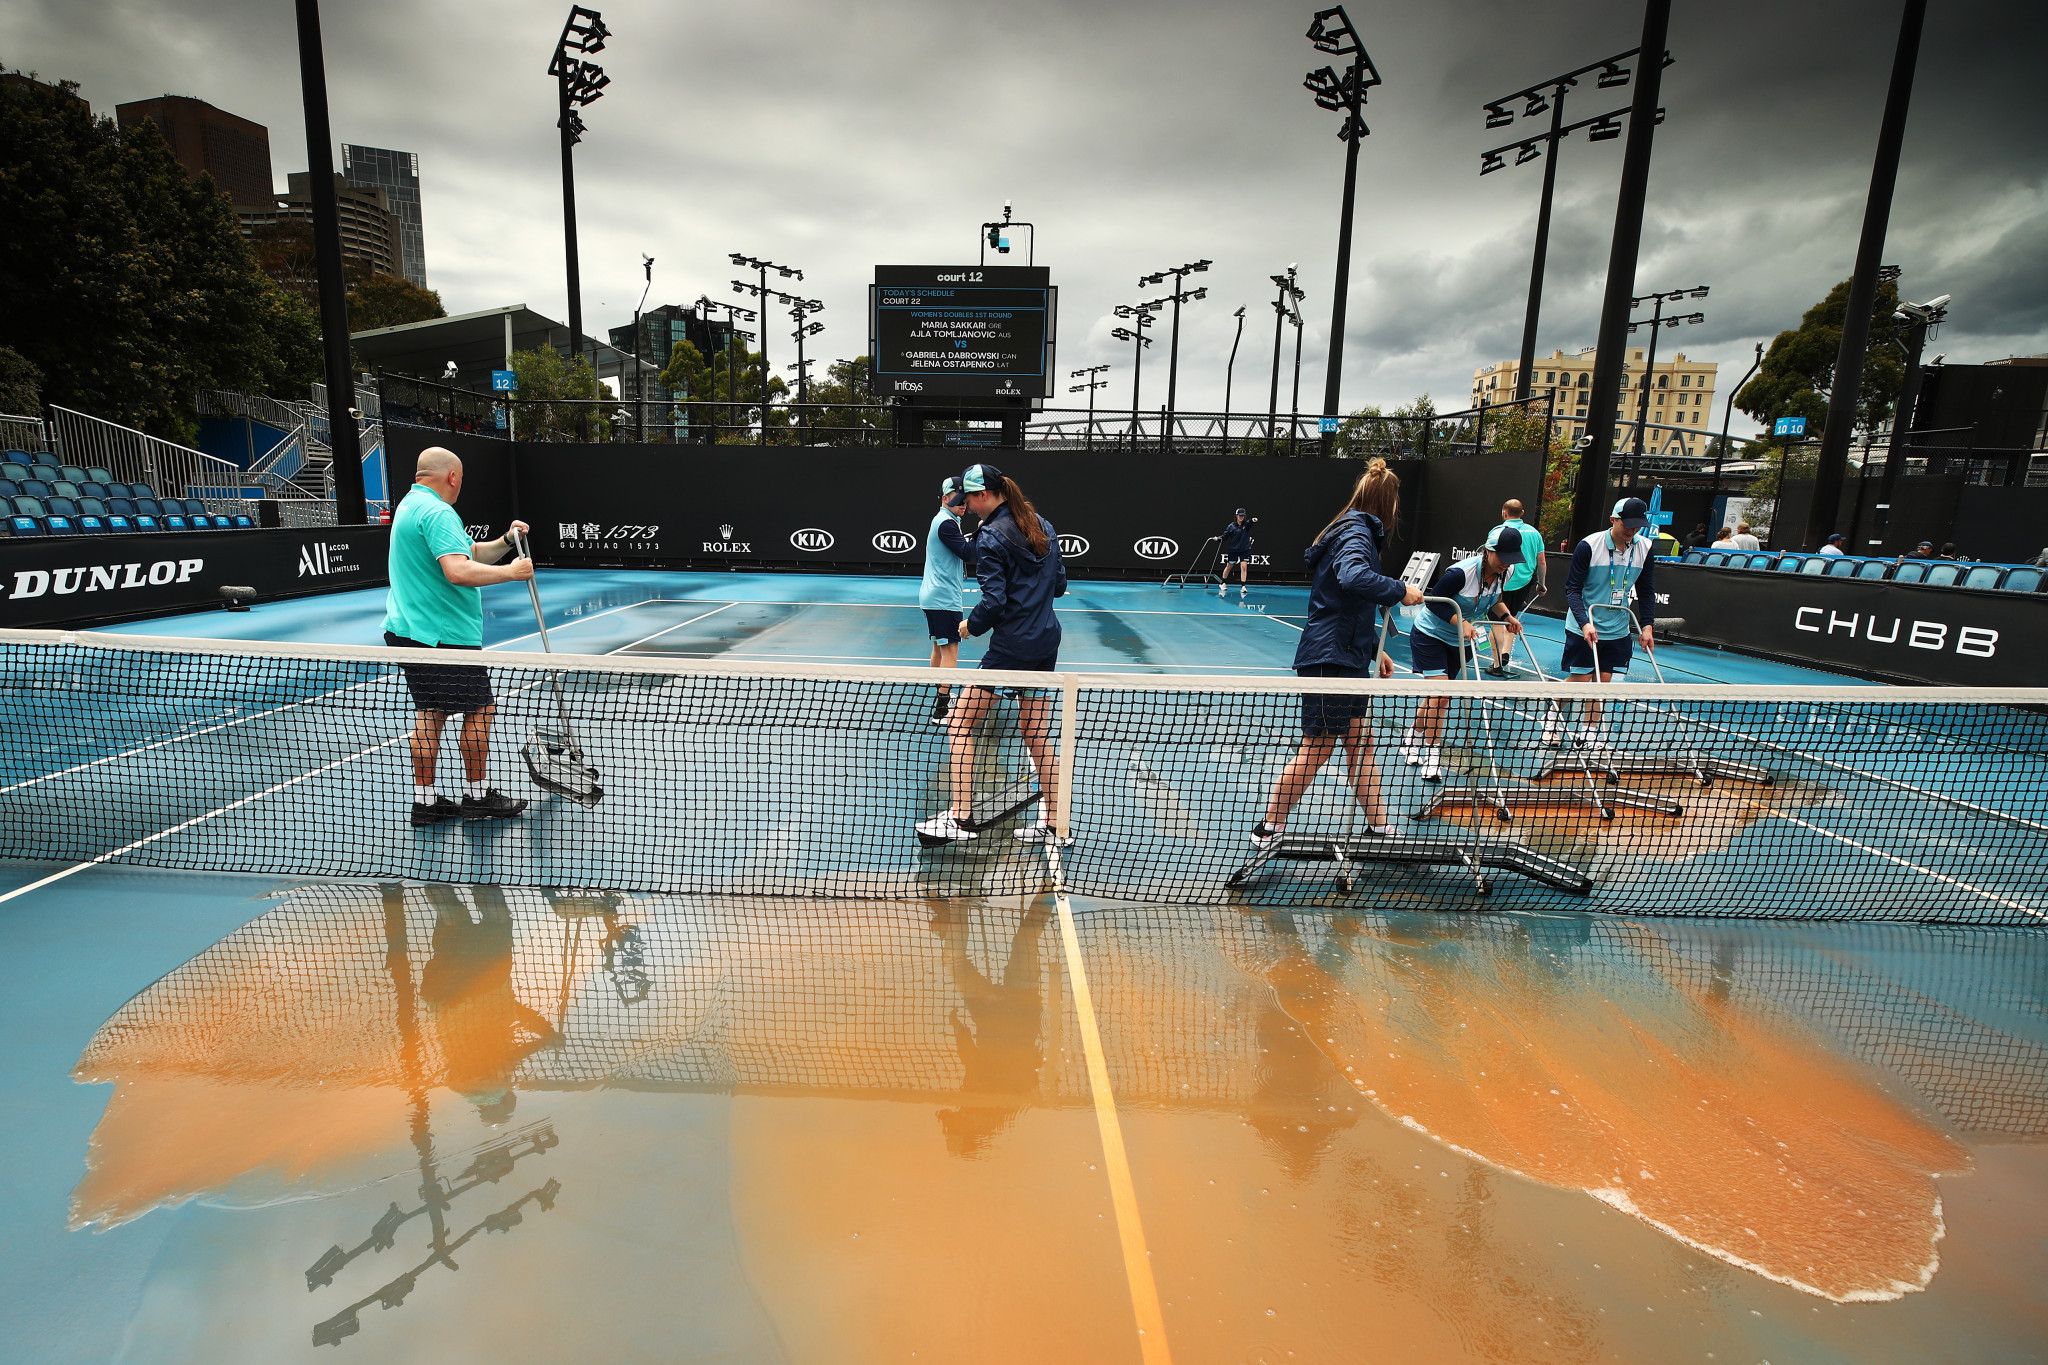 Dusty rain delays play at Australian Open, as courts deep-cleaned